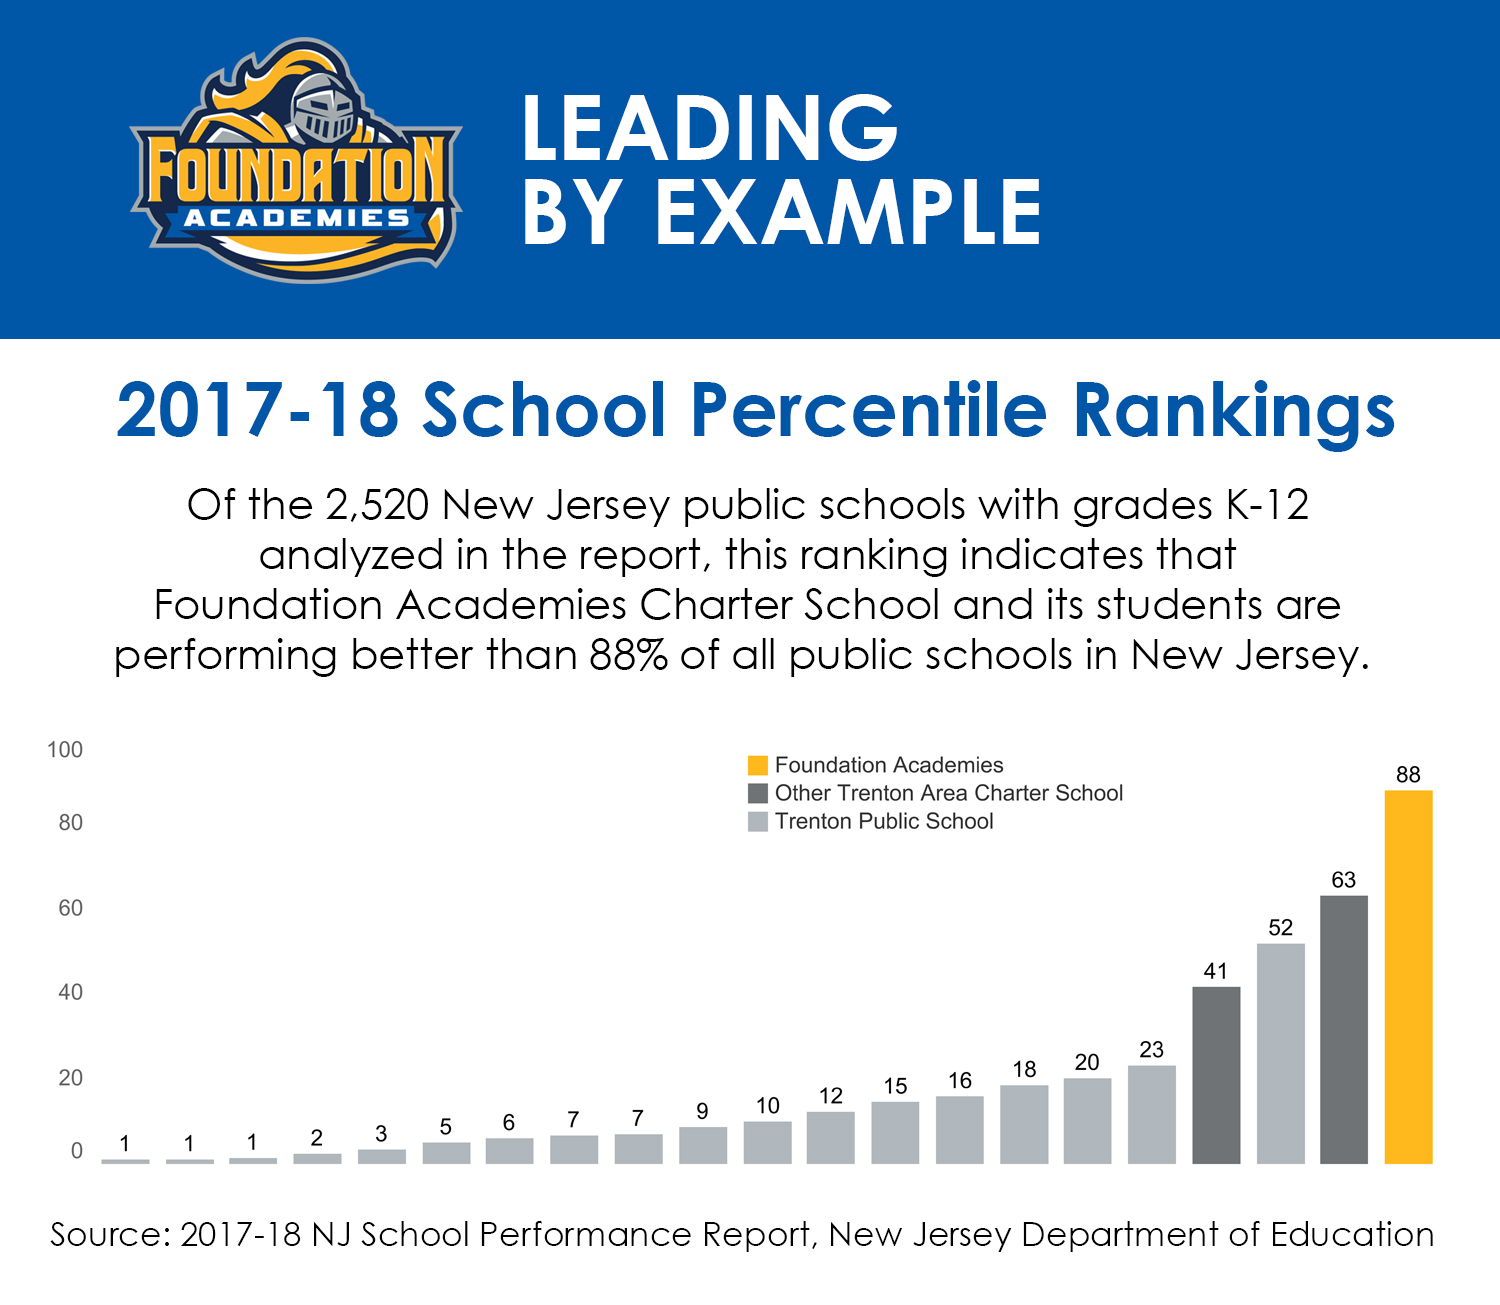 Of the 2,520 New Jersey public schools with grades K-12 analyzed in the report, this ranking indicates that Foundation Academies Charter School and its students are performing better than 88% of all public schools in New Jersey.